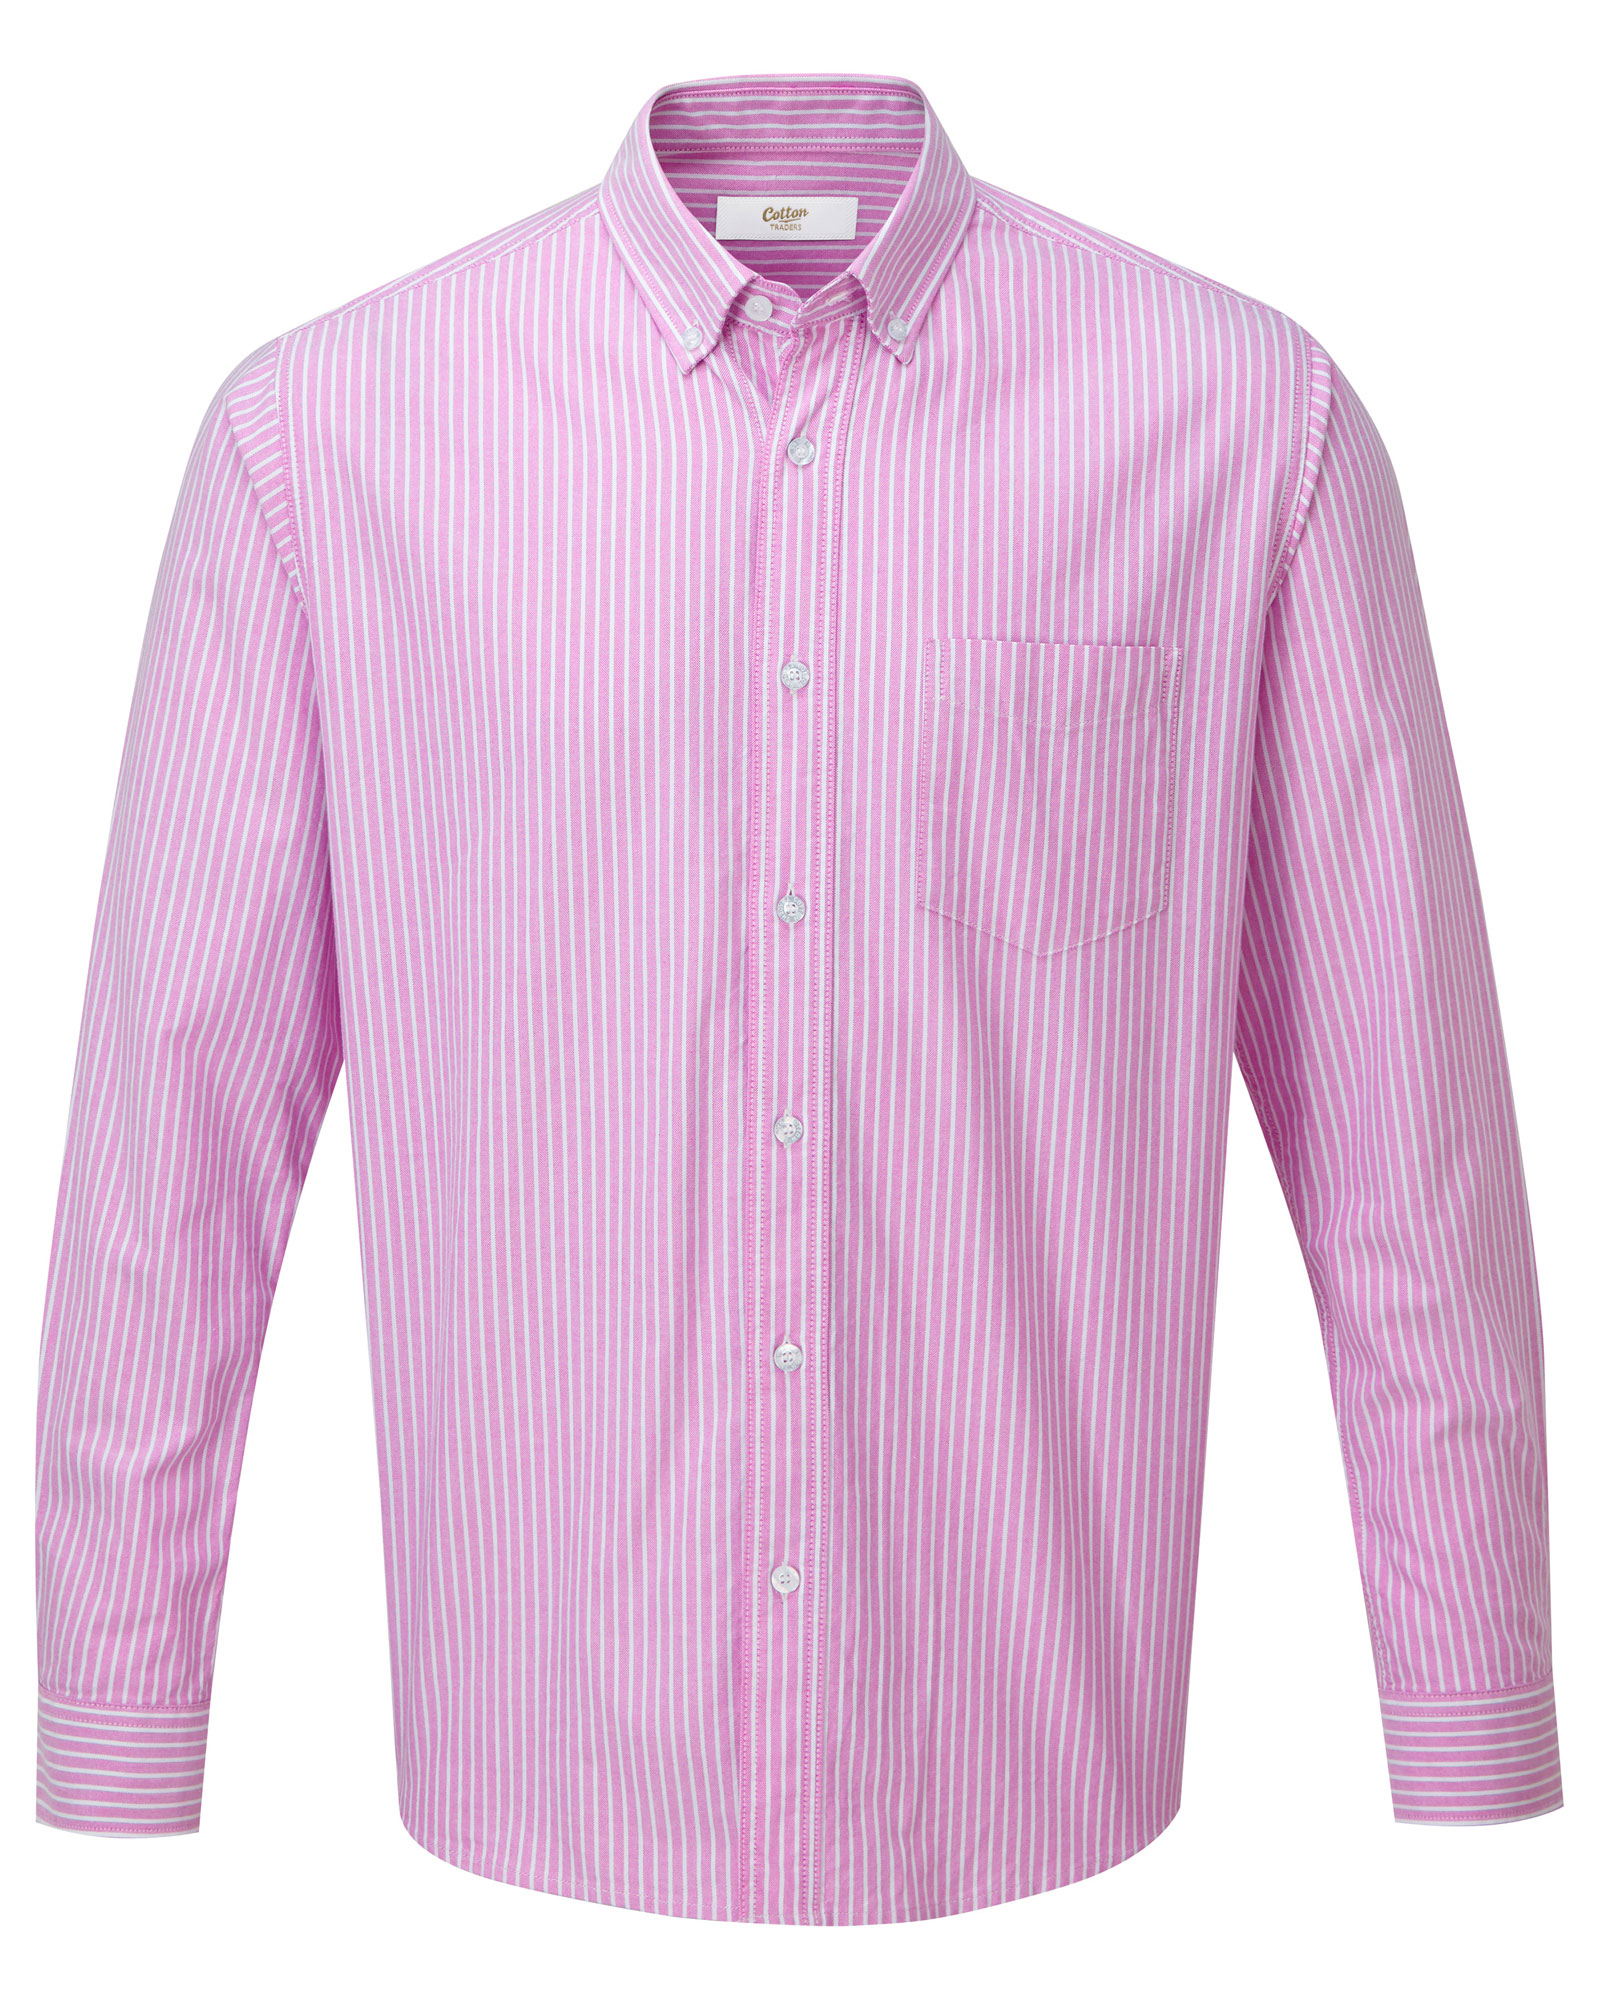 Cotton Traders Mens Long Sleeve Ultimate Shirt Casual Top